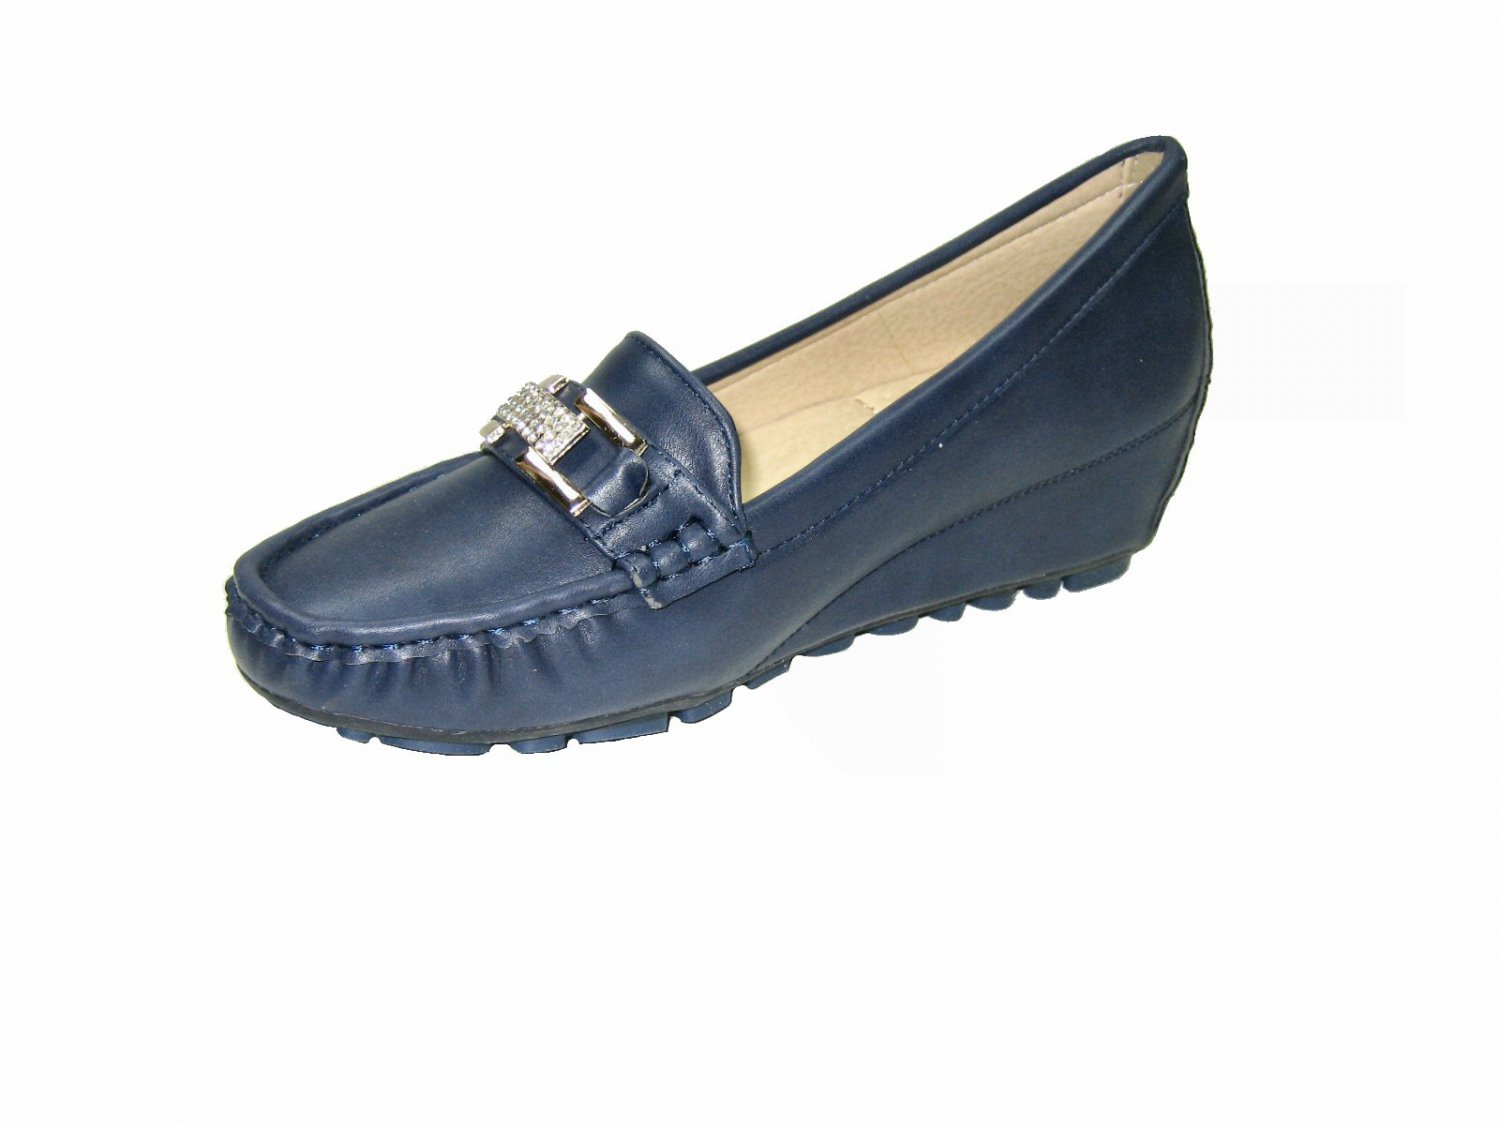 Nature Breeze SouthBay-2p 2 inch wedge heel comfort loafer rhinestone pumps shoe navy size 8.5